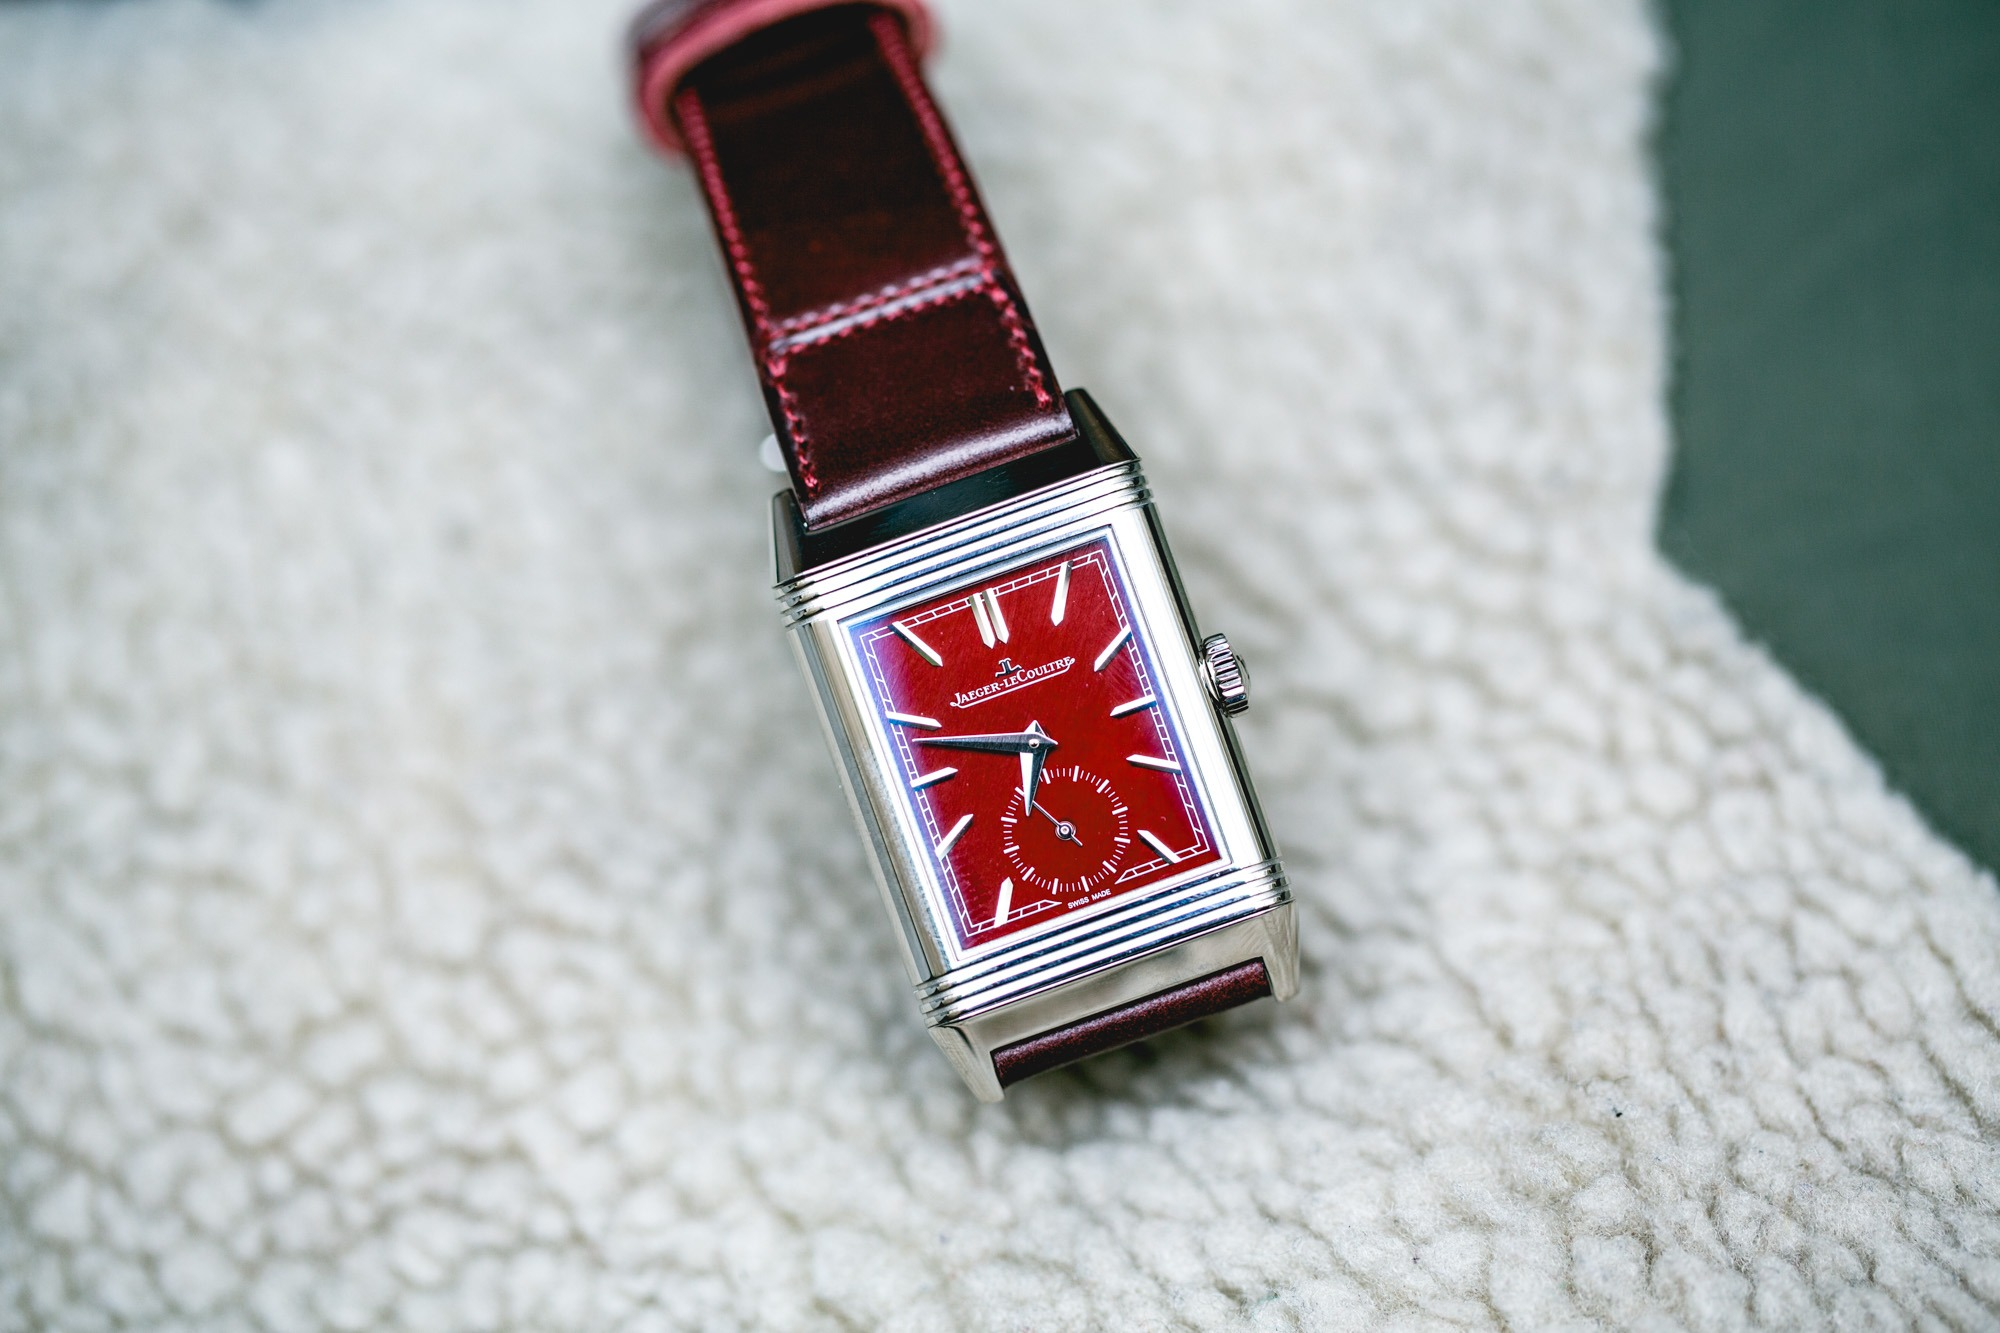 Jaeger-LeCoultre Reverso Tribute Small Seconds lie-de-vin - Focus